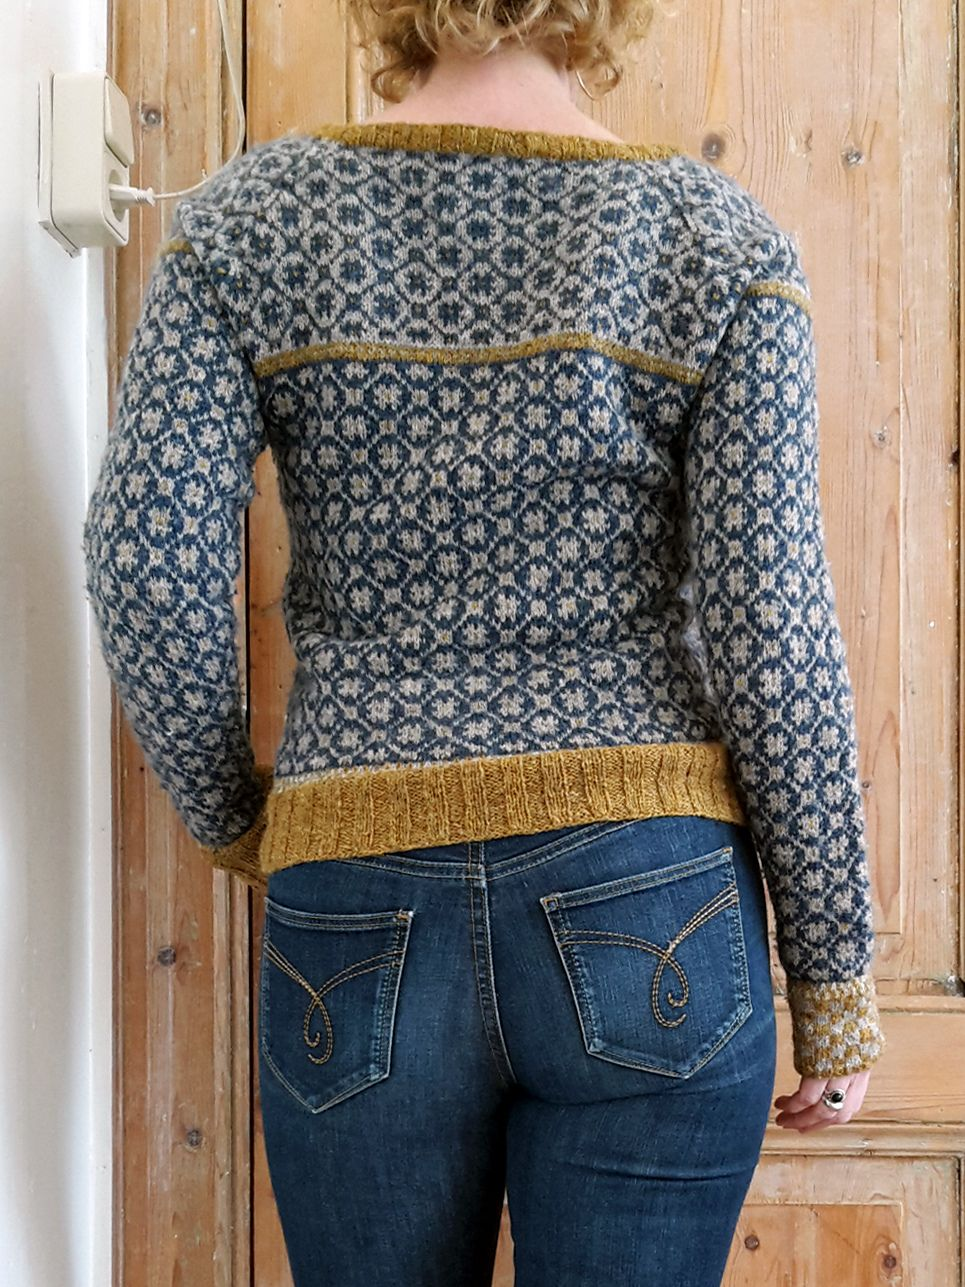 Ravelry: hinke\'s A colorwork cardigan, one or another | knit fast ...